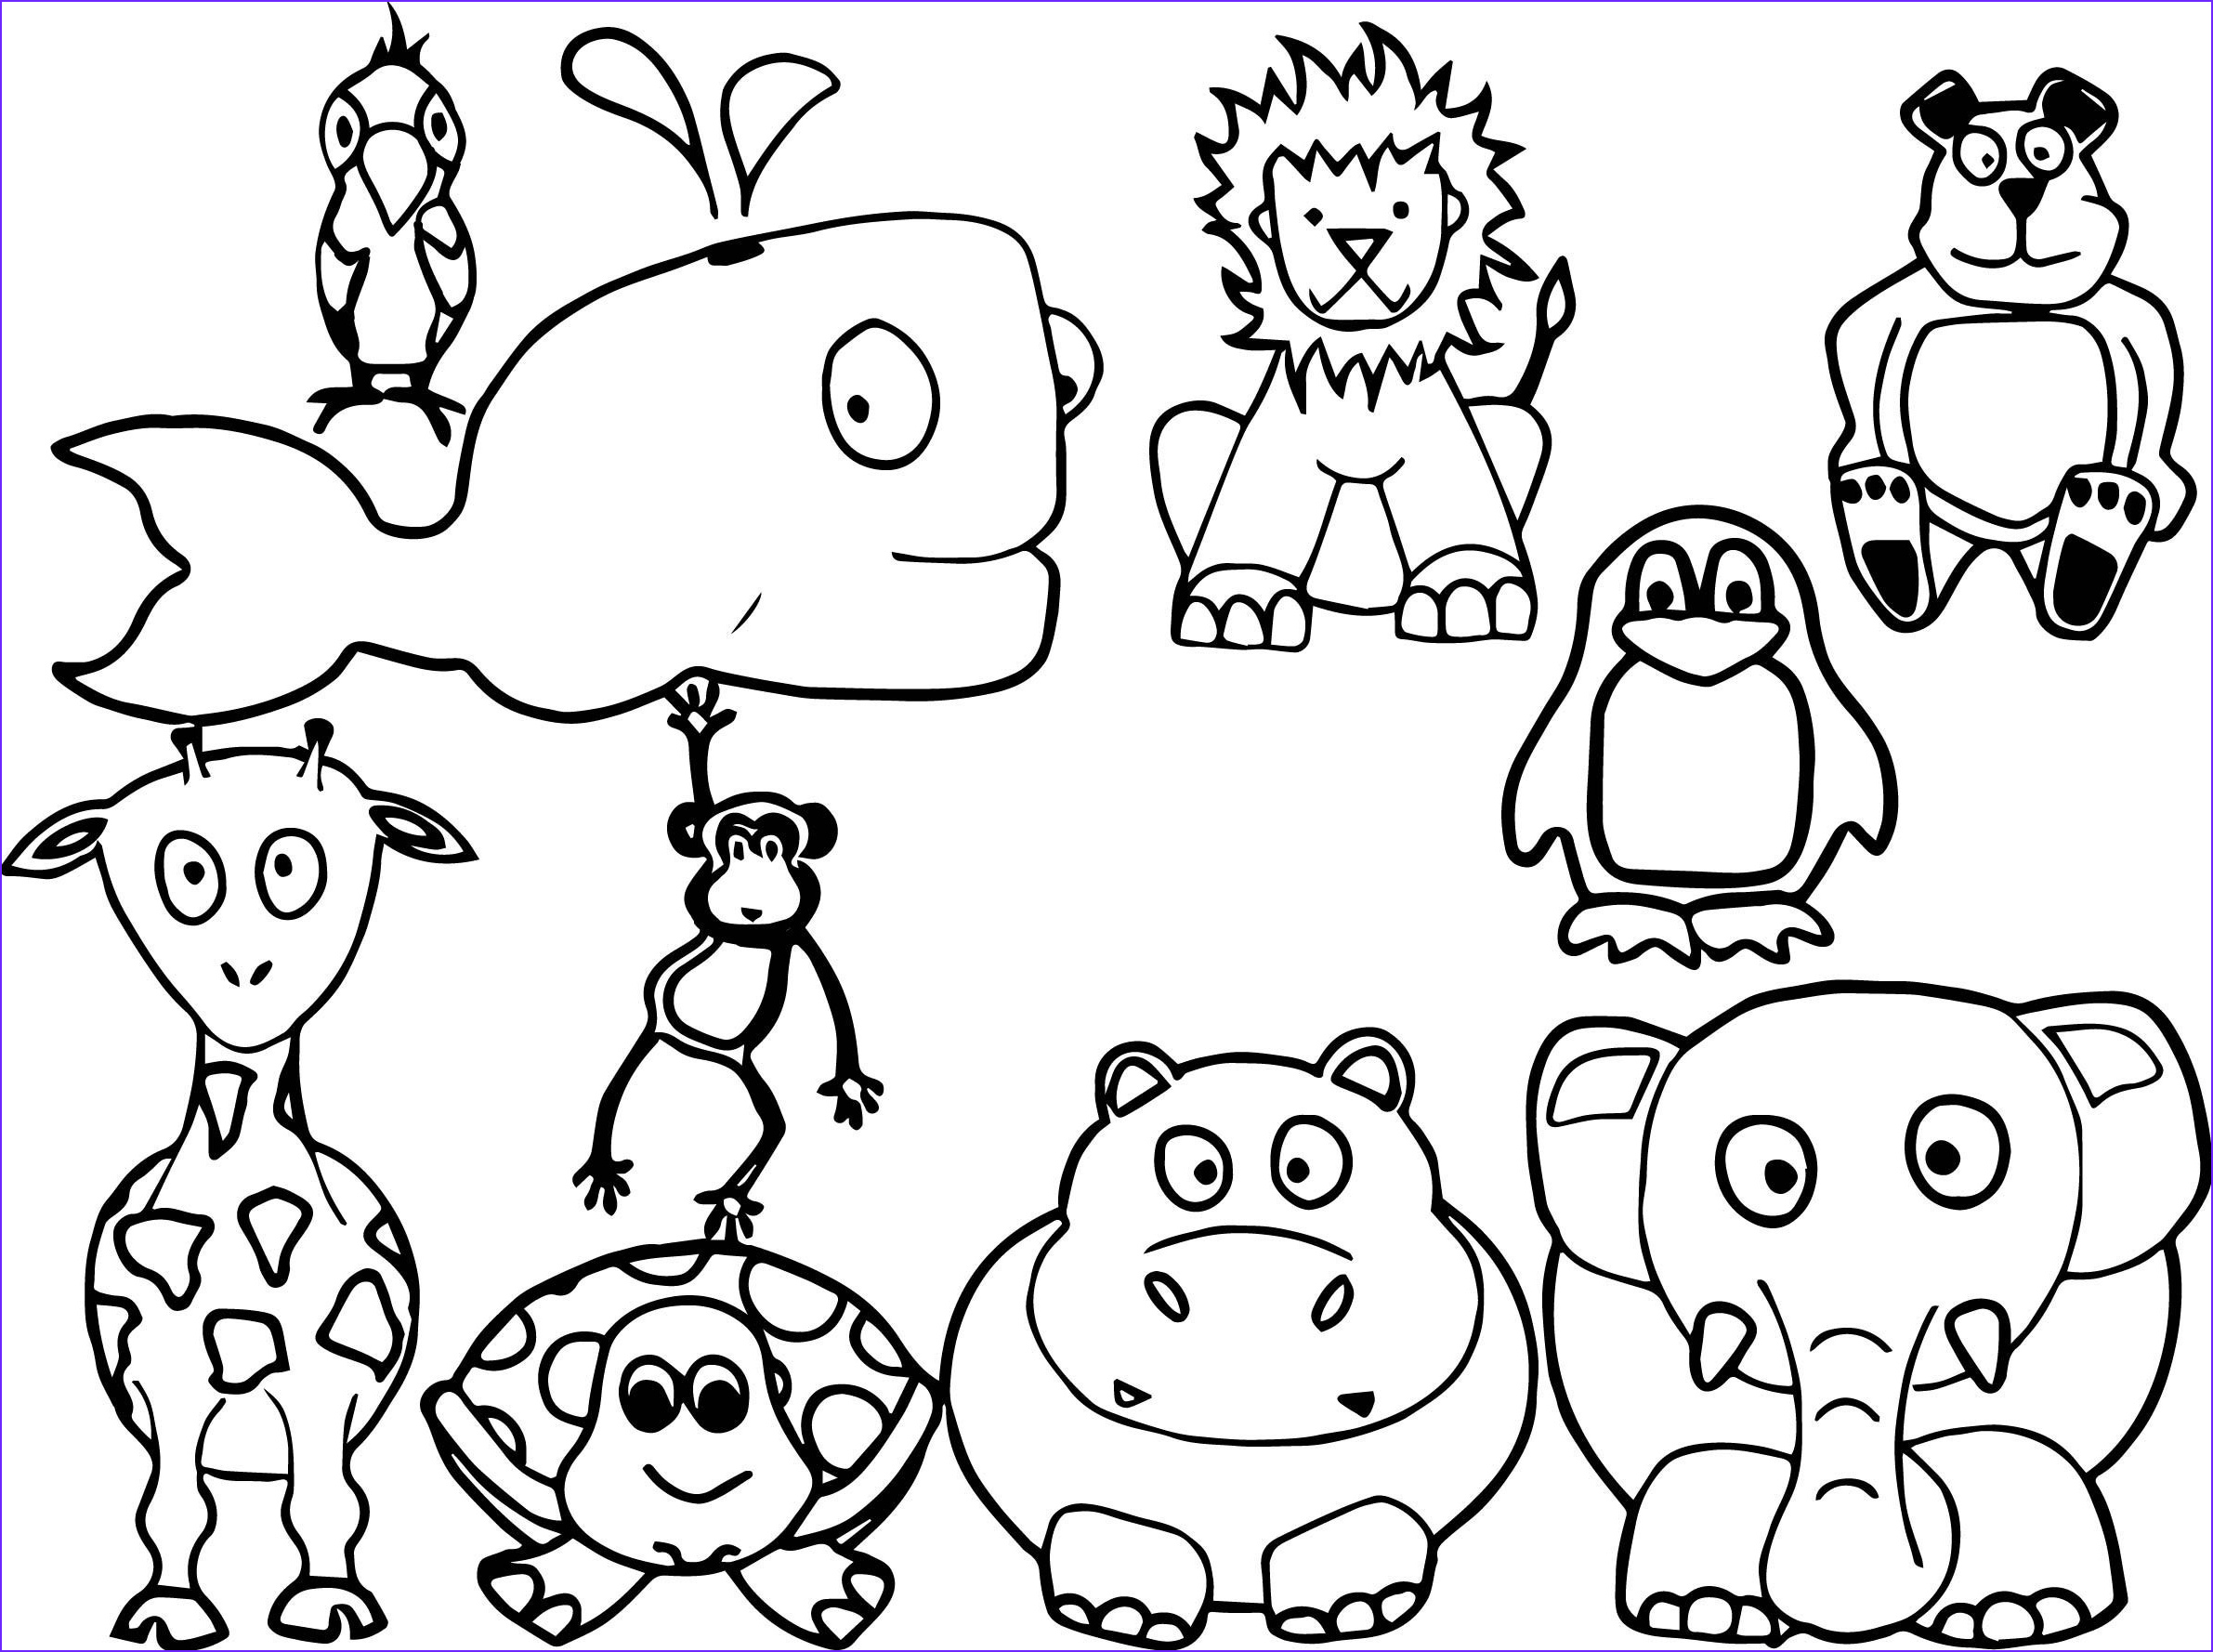 Printable Coloring Page Of Animals Luxury Stock Animal Coloring Pages Best Coloring Pages for Kids